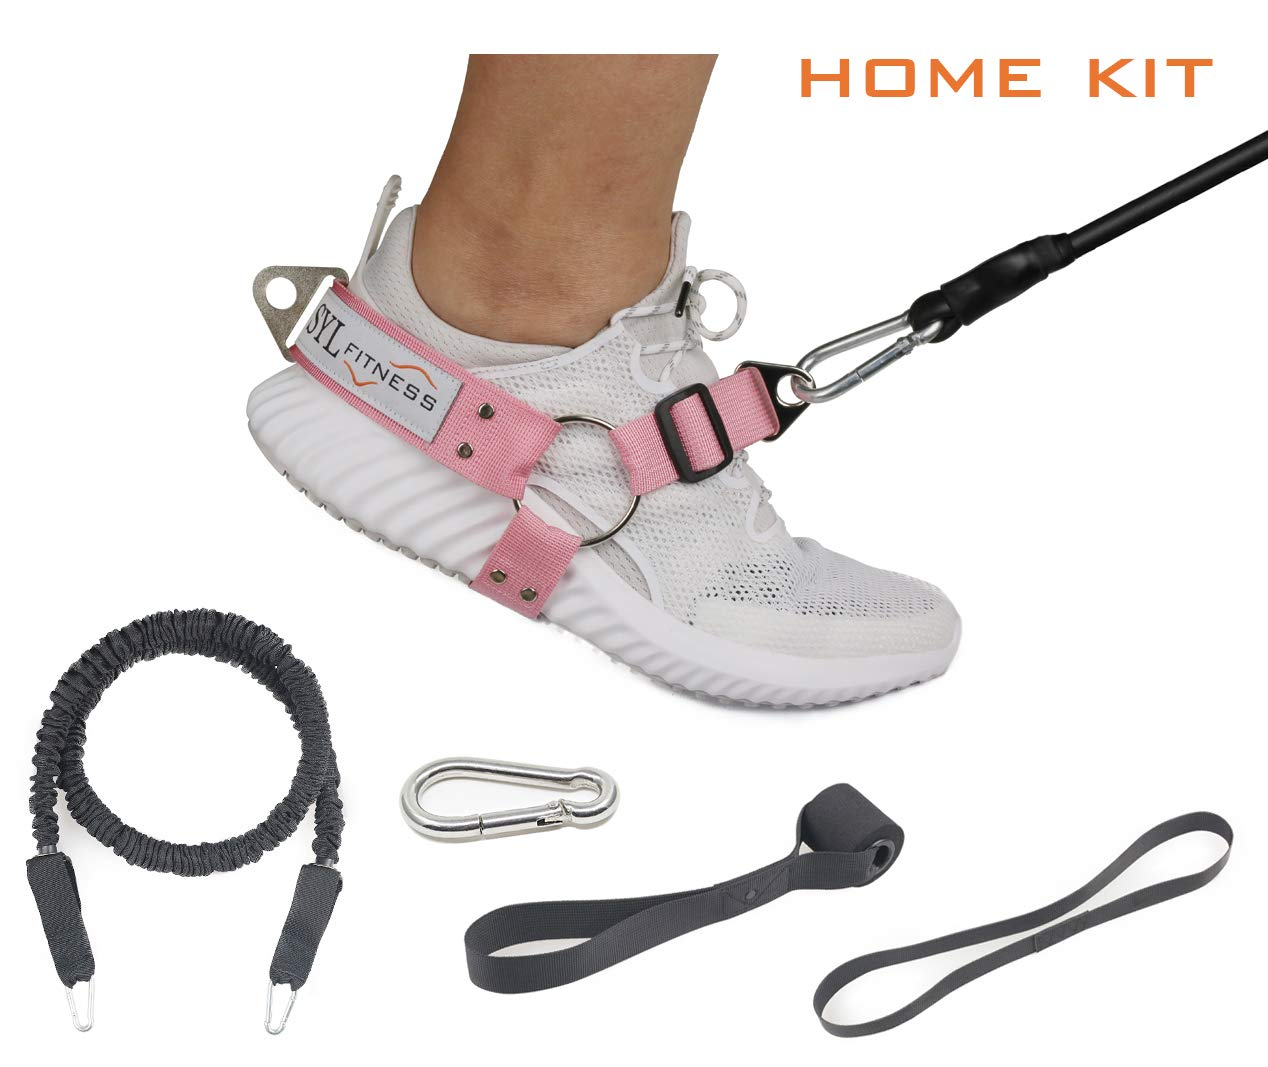 SYL Fitness Glute Workout Kickback Strap for Cable Machine Leg Resistance Booty Bands Exercise at Home Gym Equipment aux Femmes)